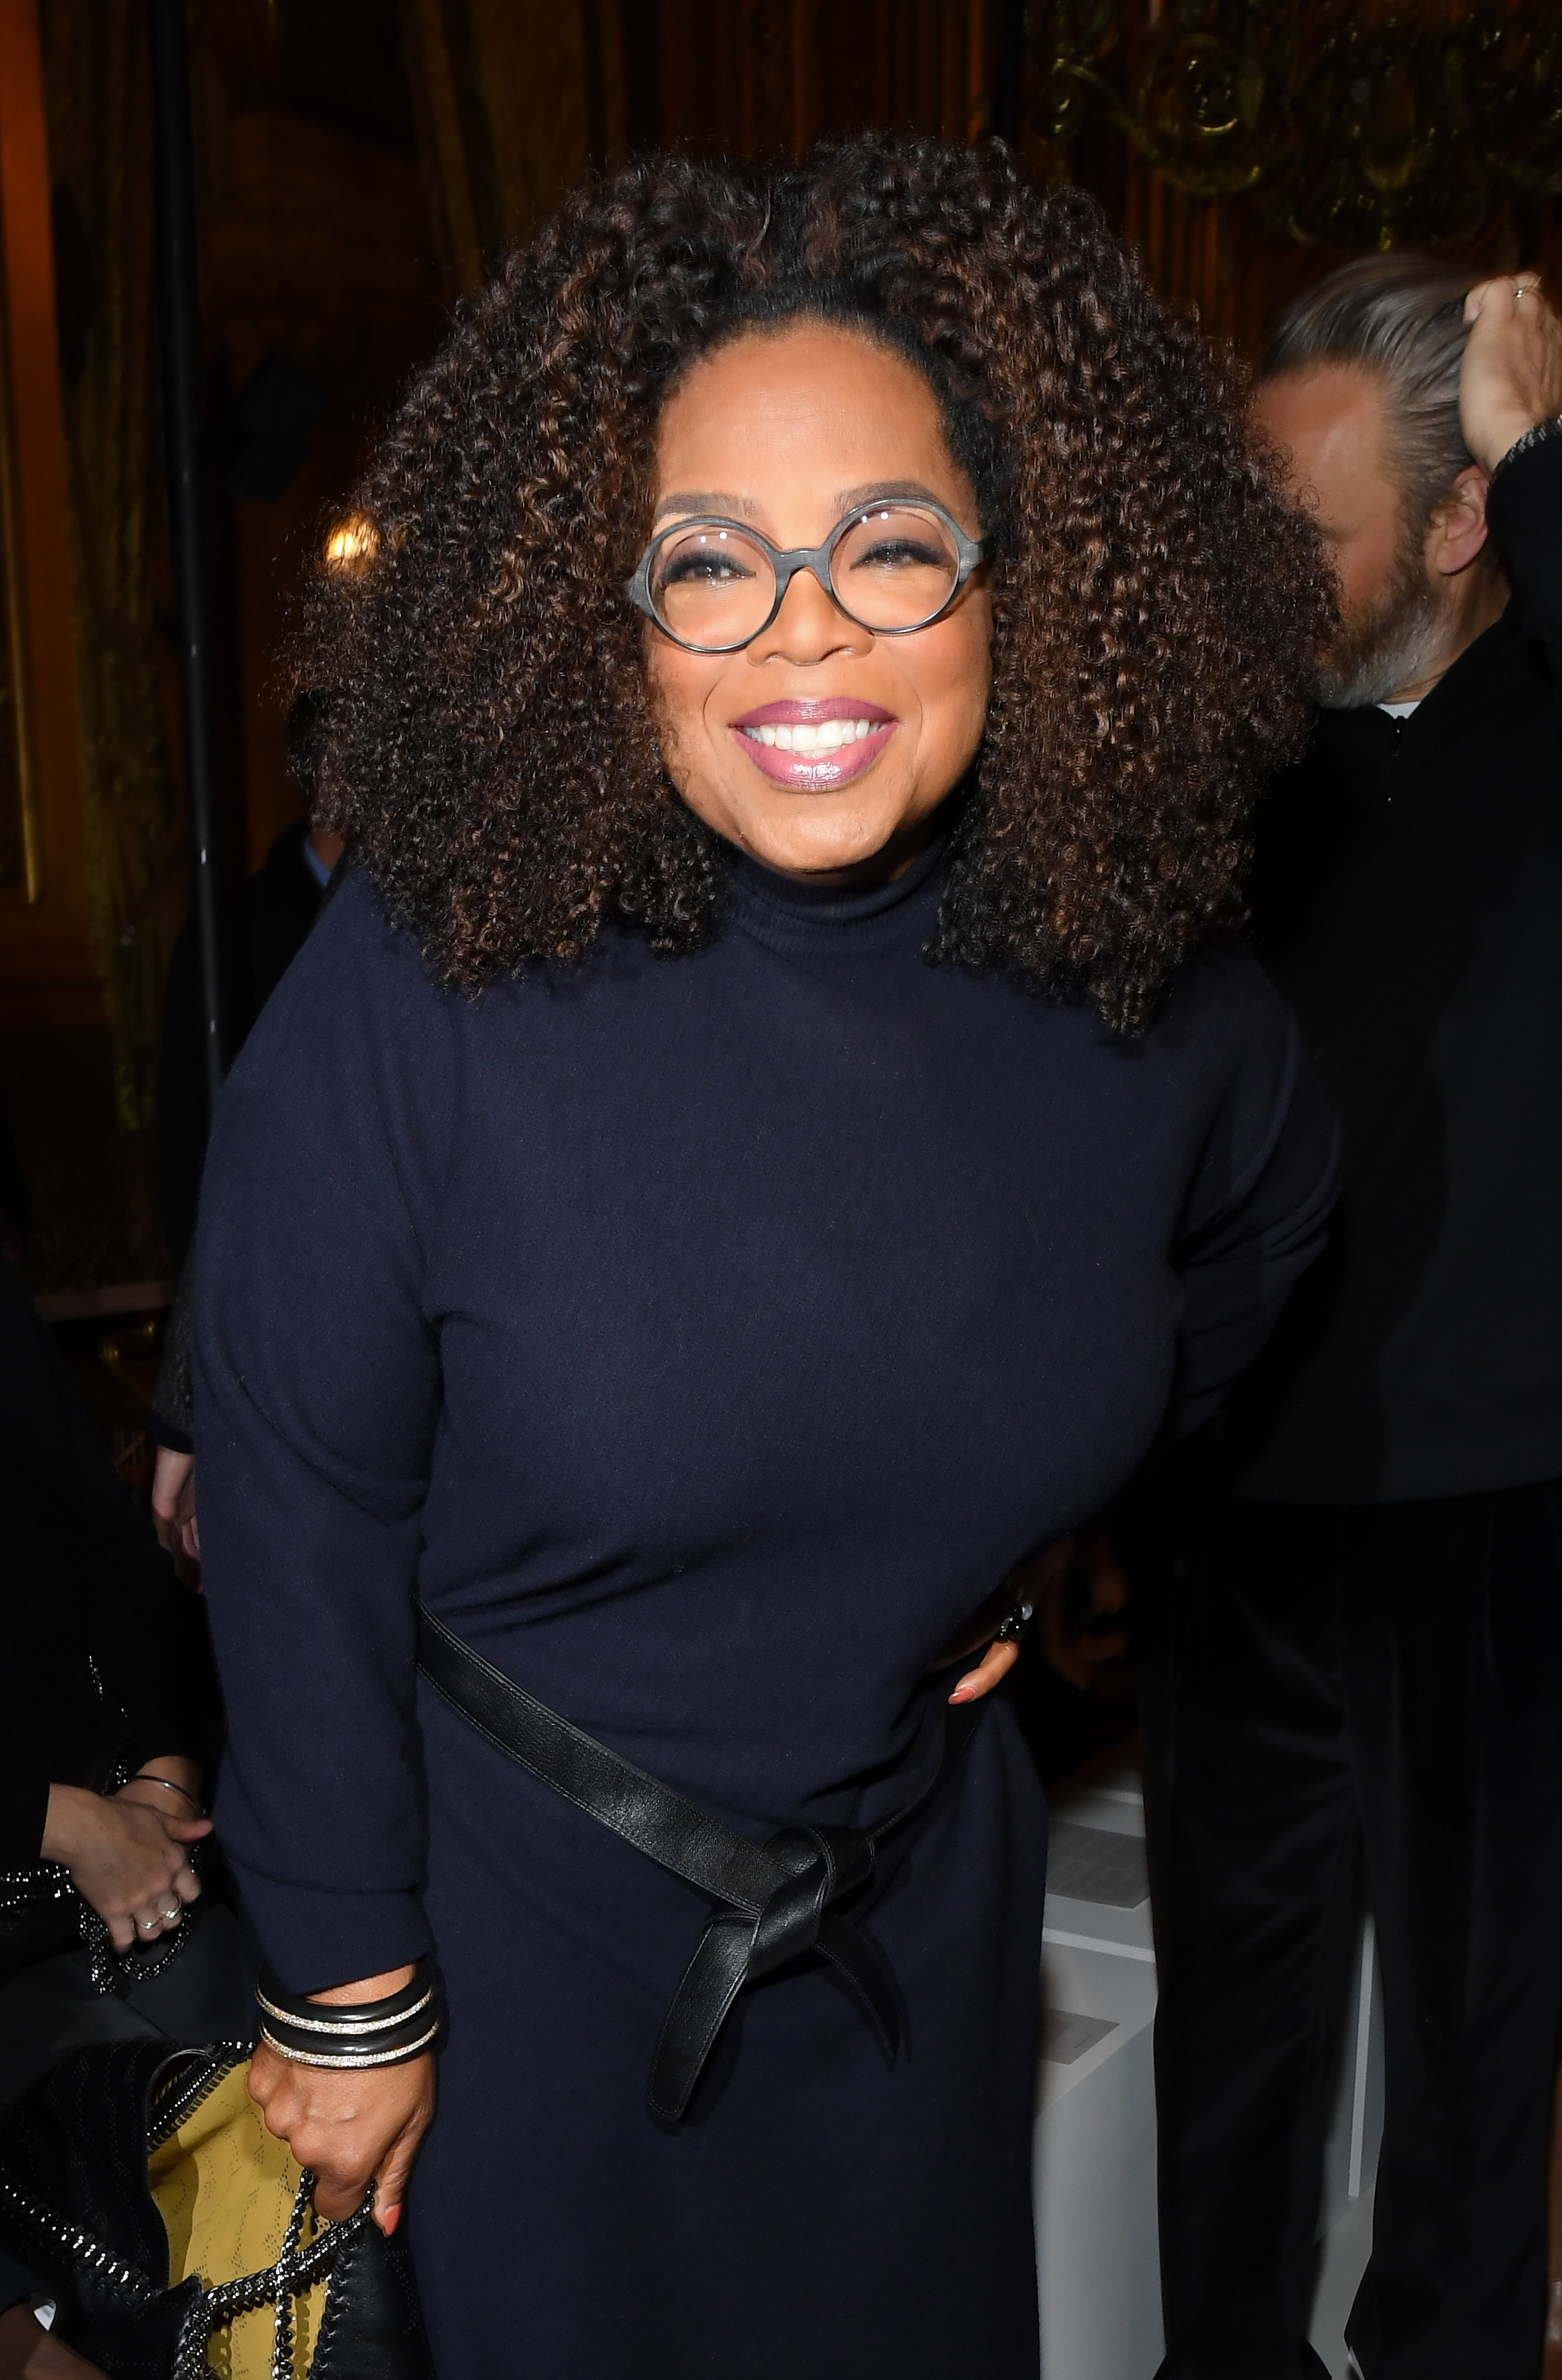 Oprah Winfrey, 4. März, 2019 in Paris, Frankreich | Quelle: Getty Images